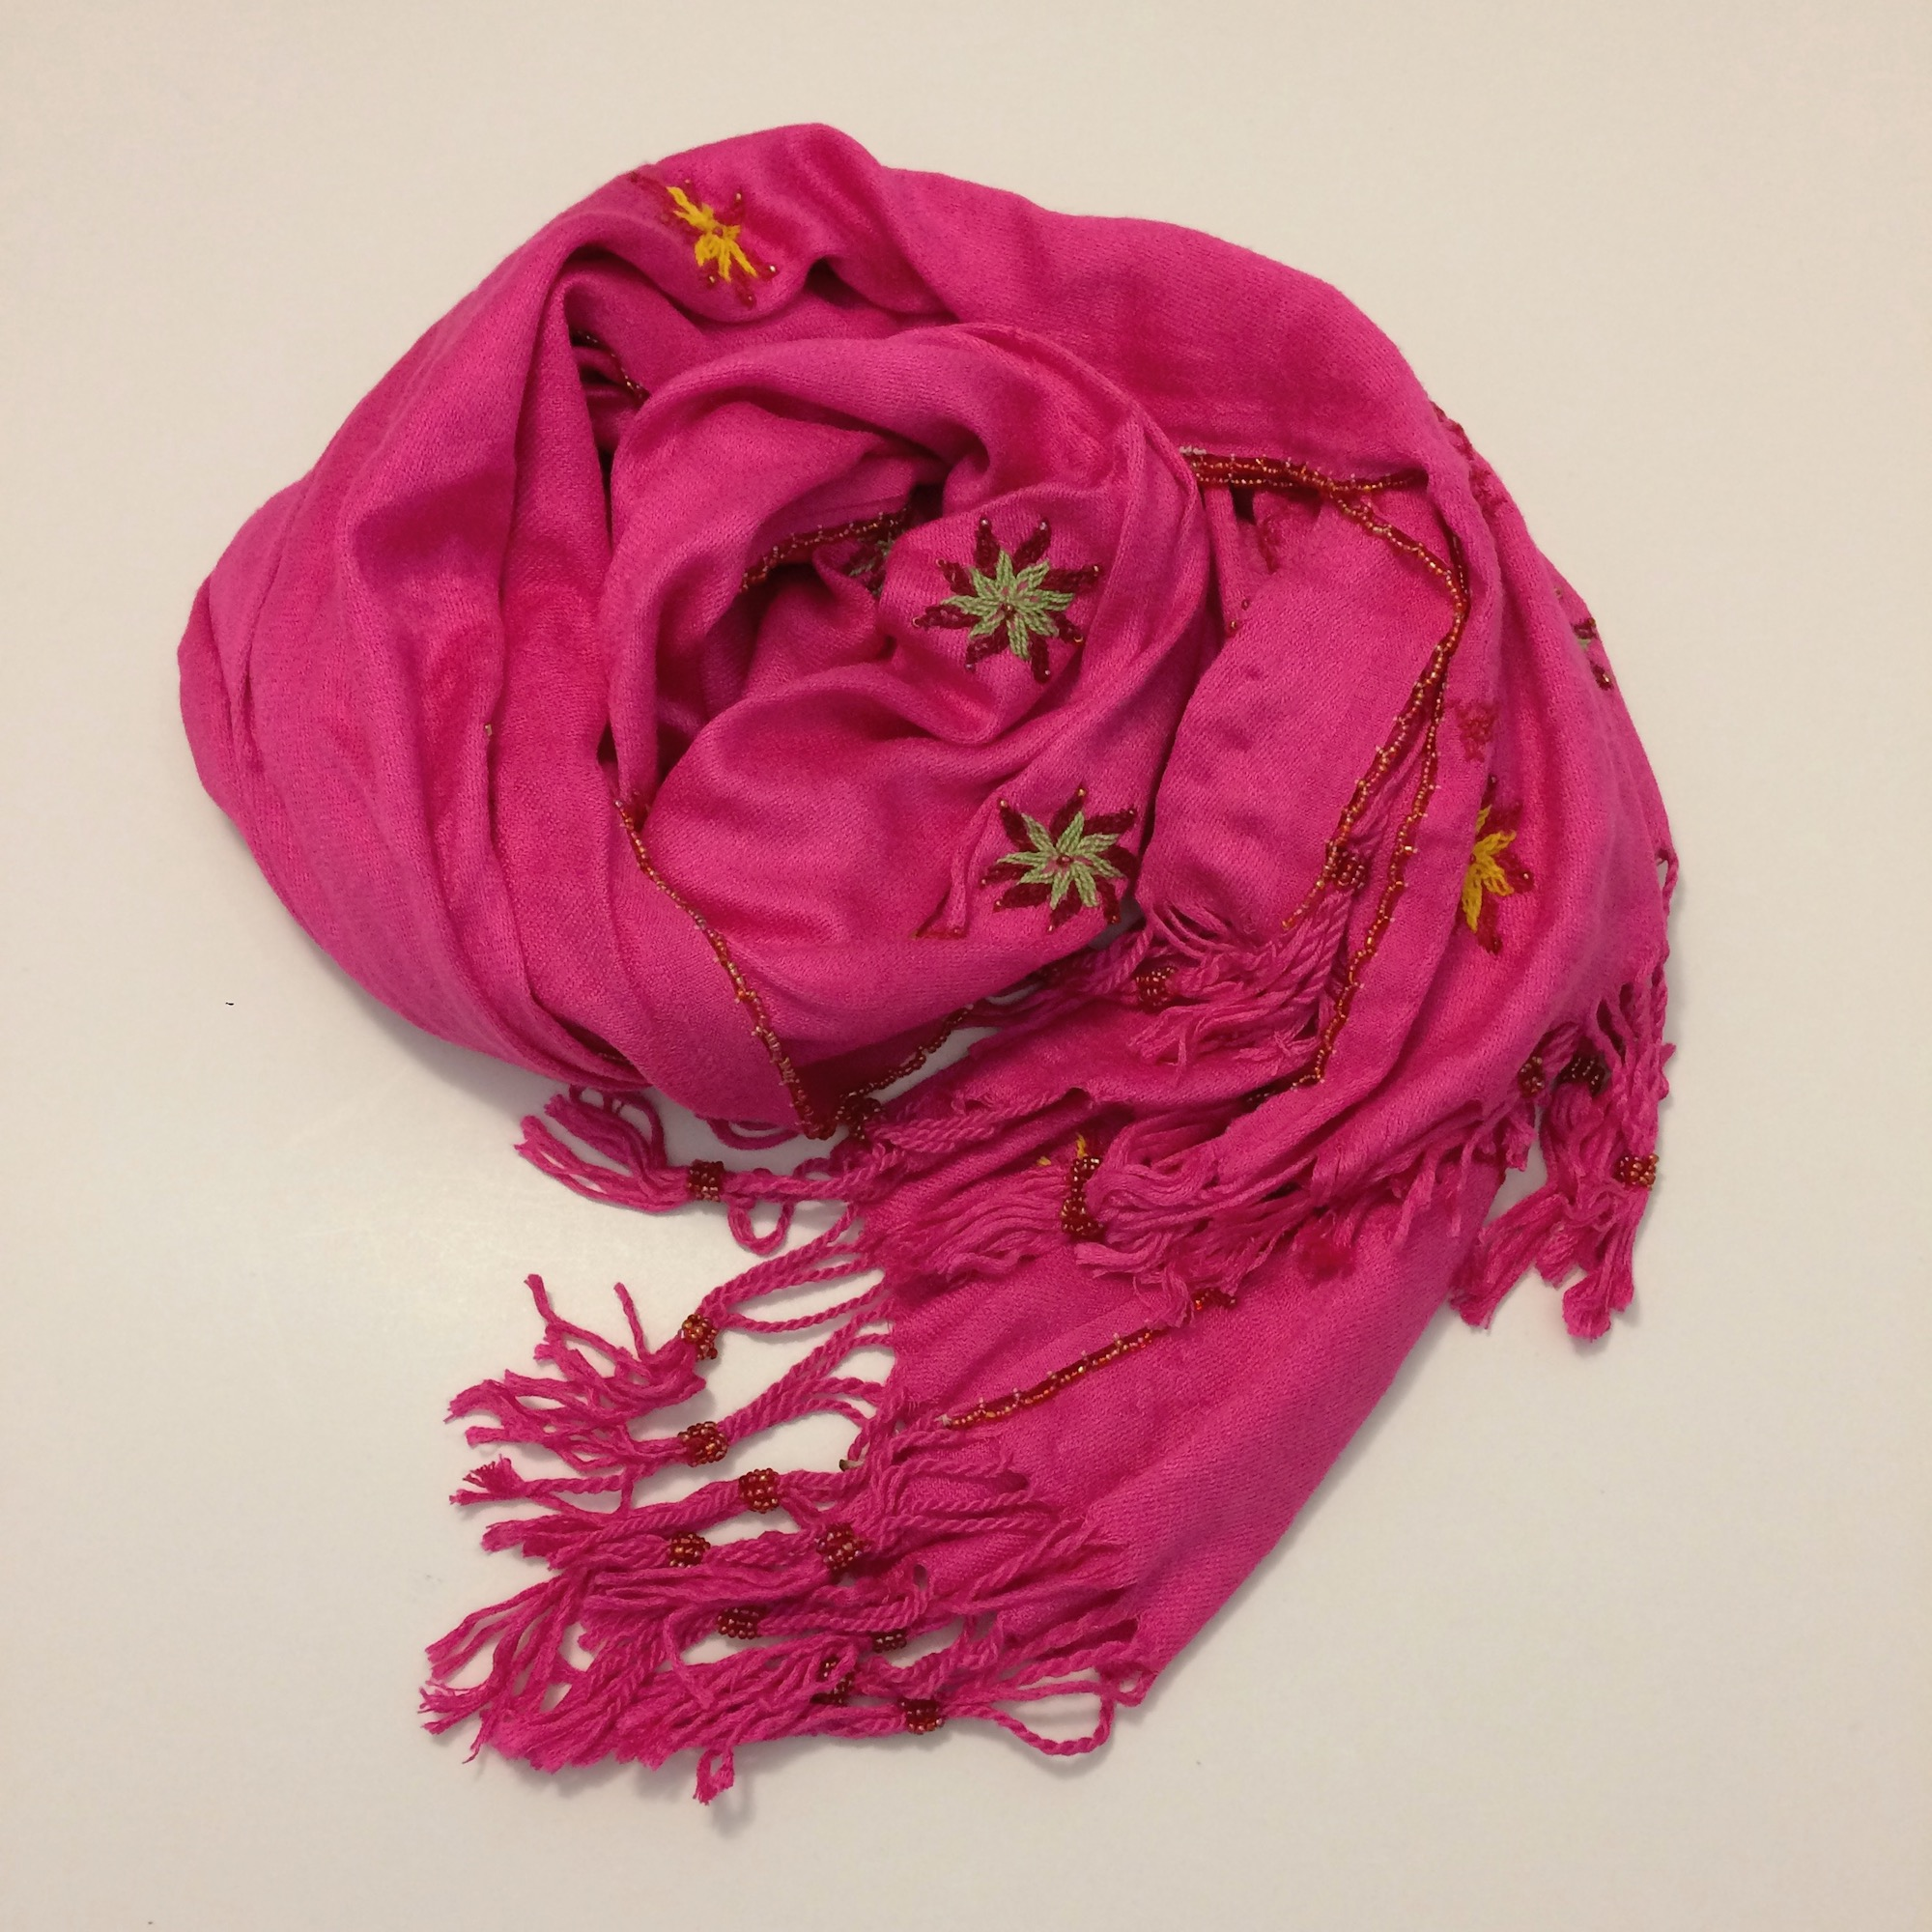 Bedouin Hand-embroidered Bright Pink Shawl